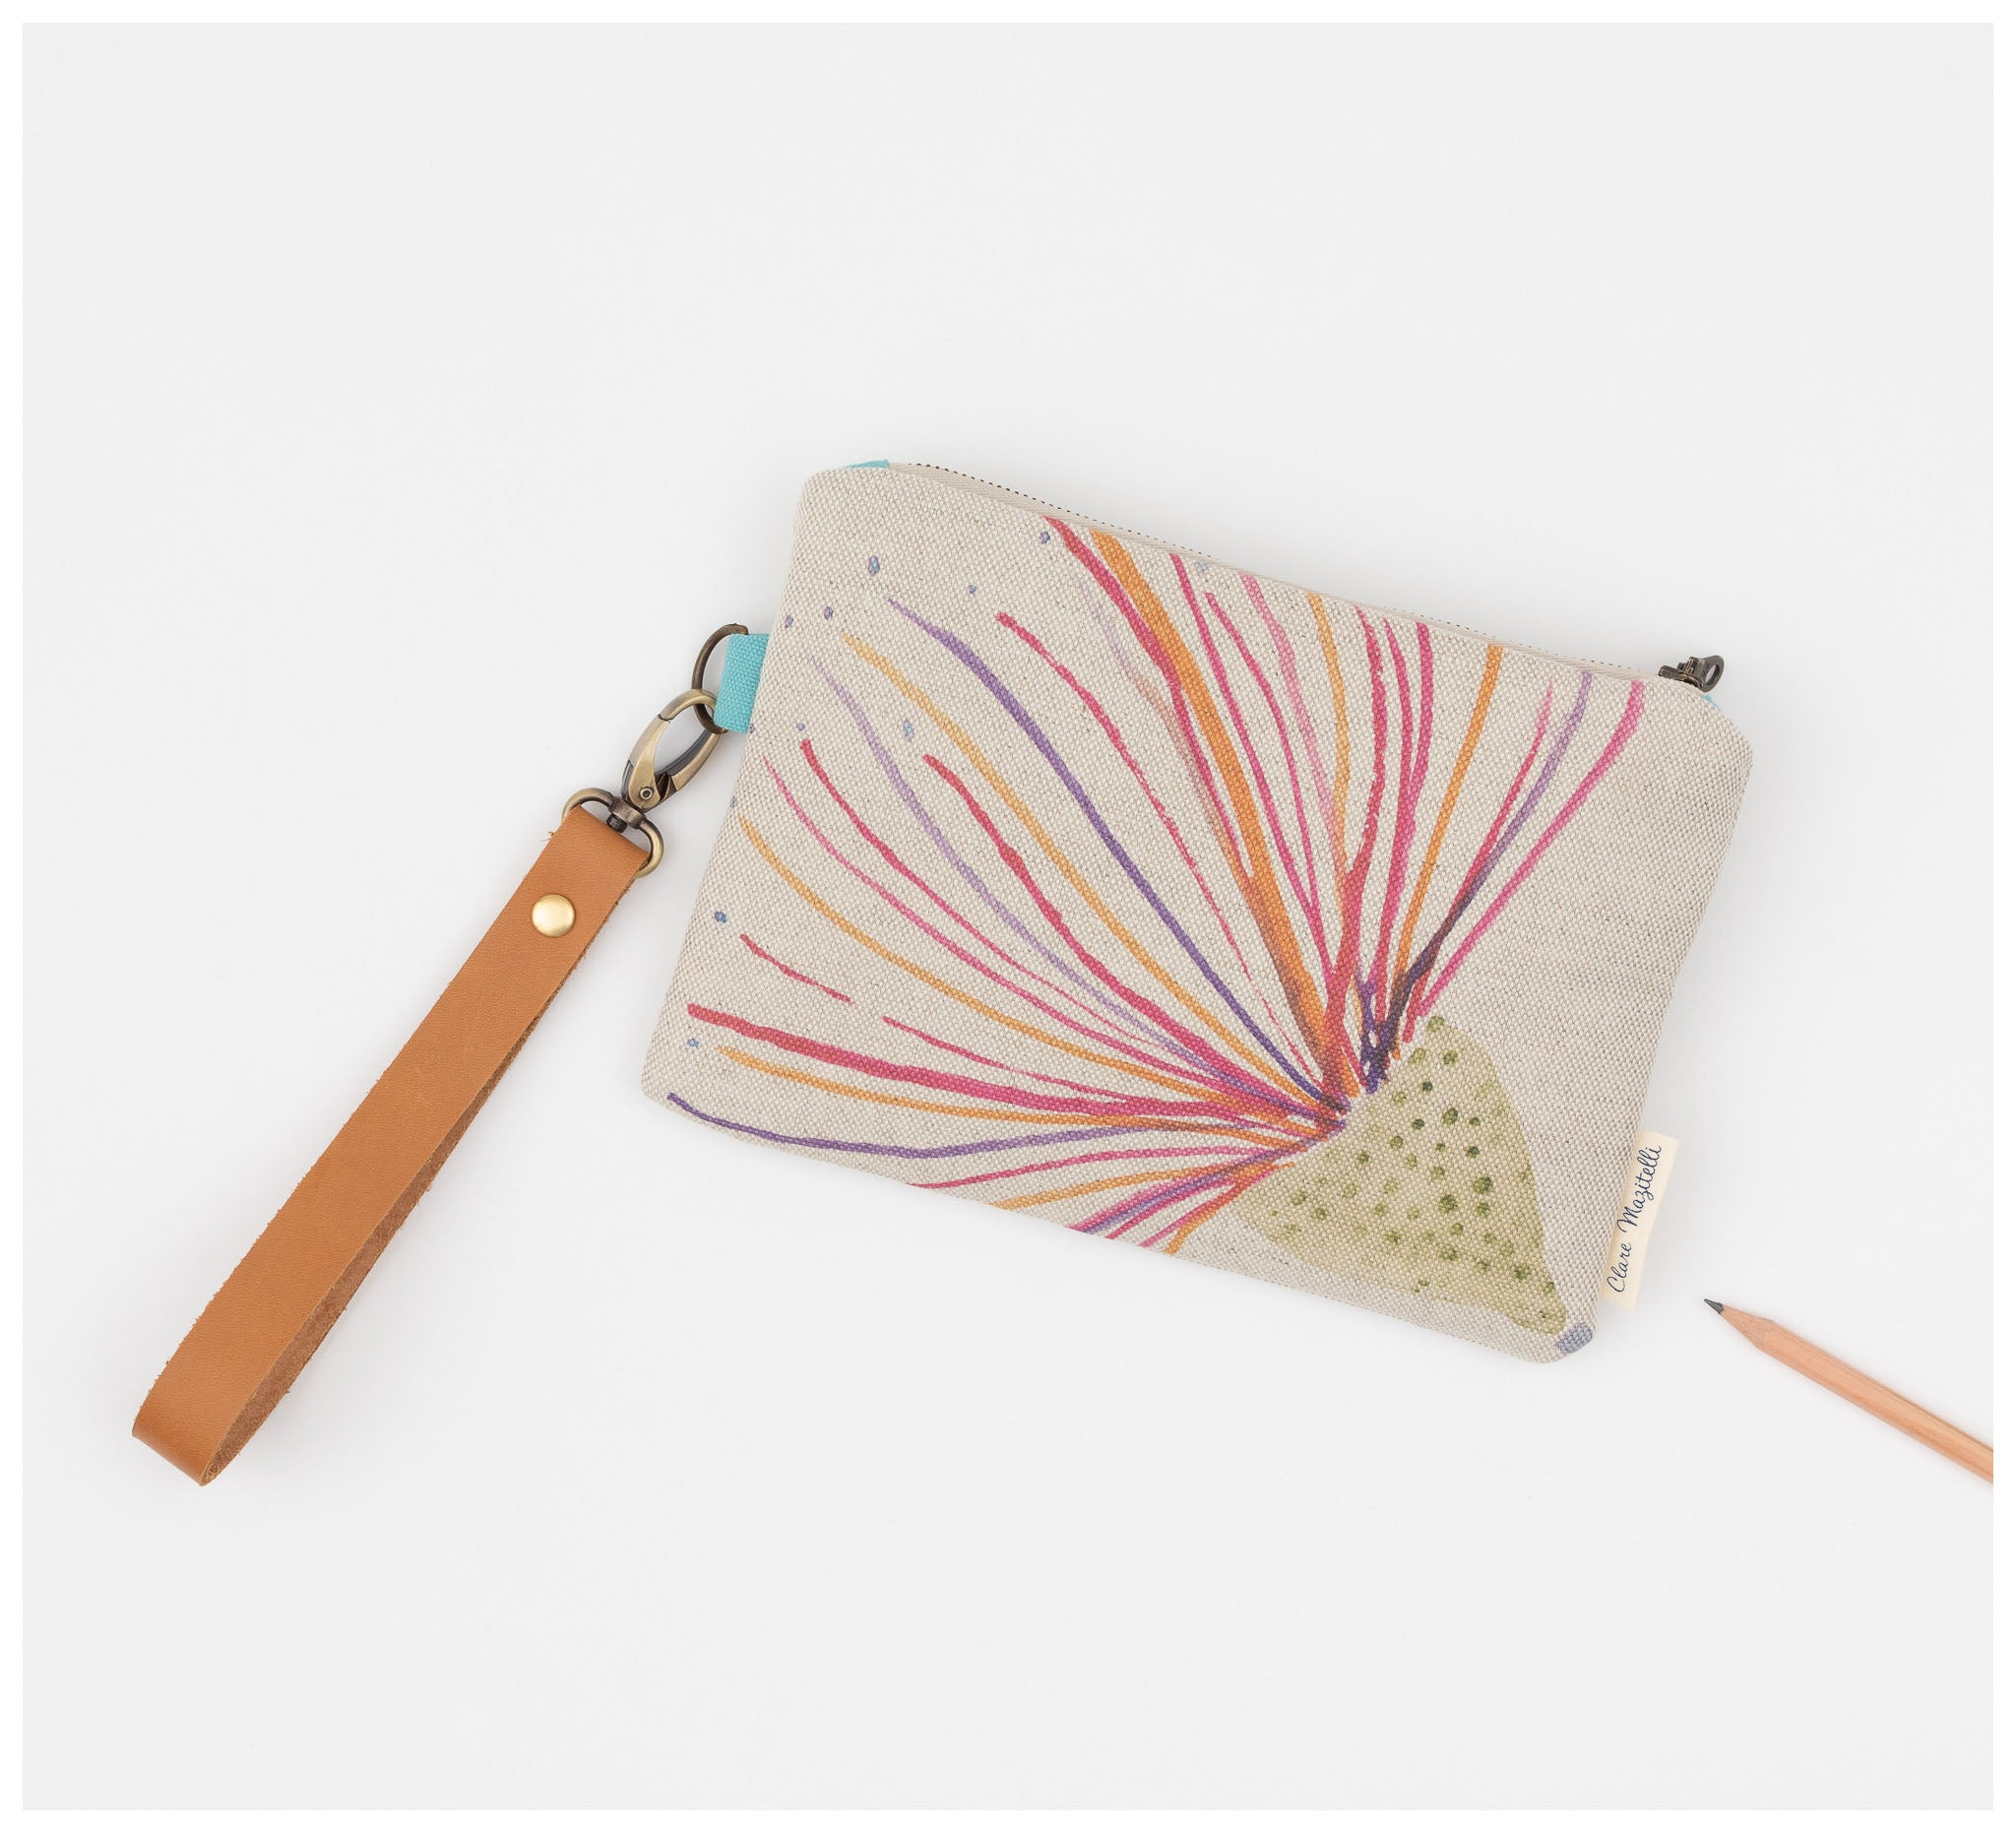 Clare Mazitelli Designs - Clutch Bags - Big Gum